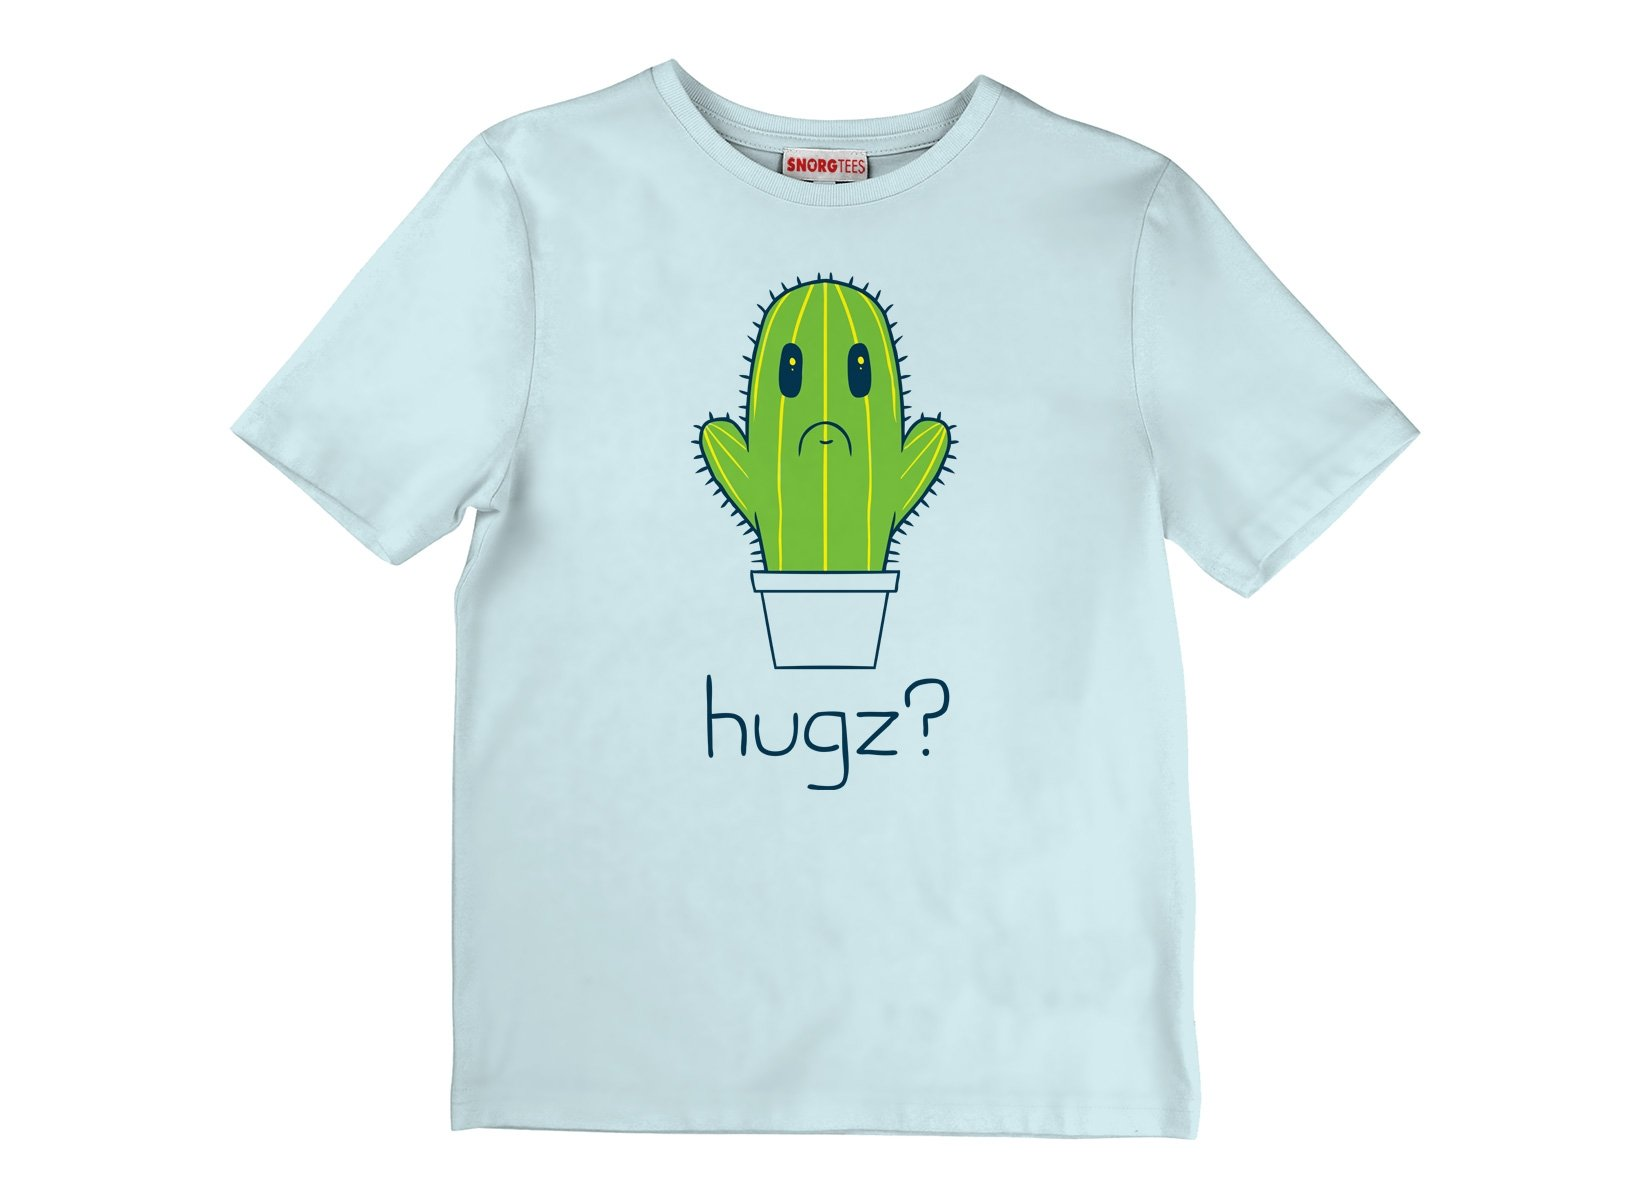 Hugz? Cactus on Kids T-Shirt